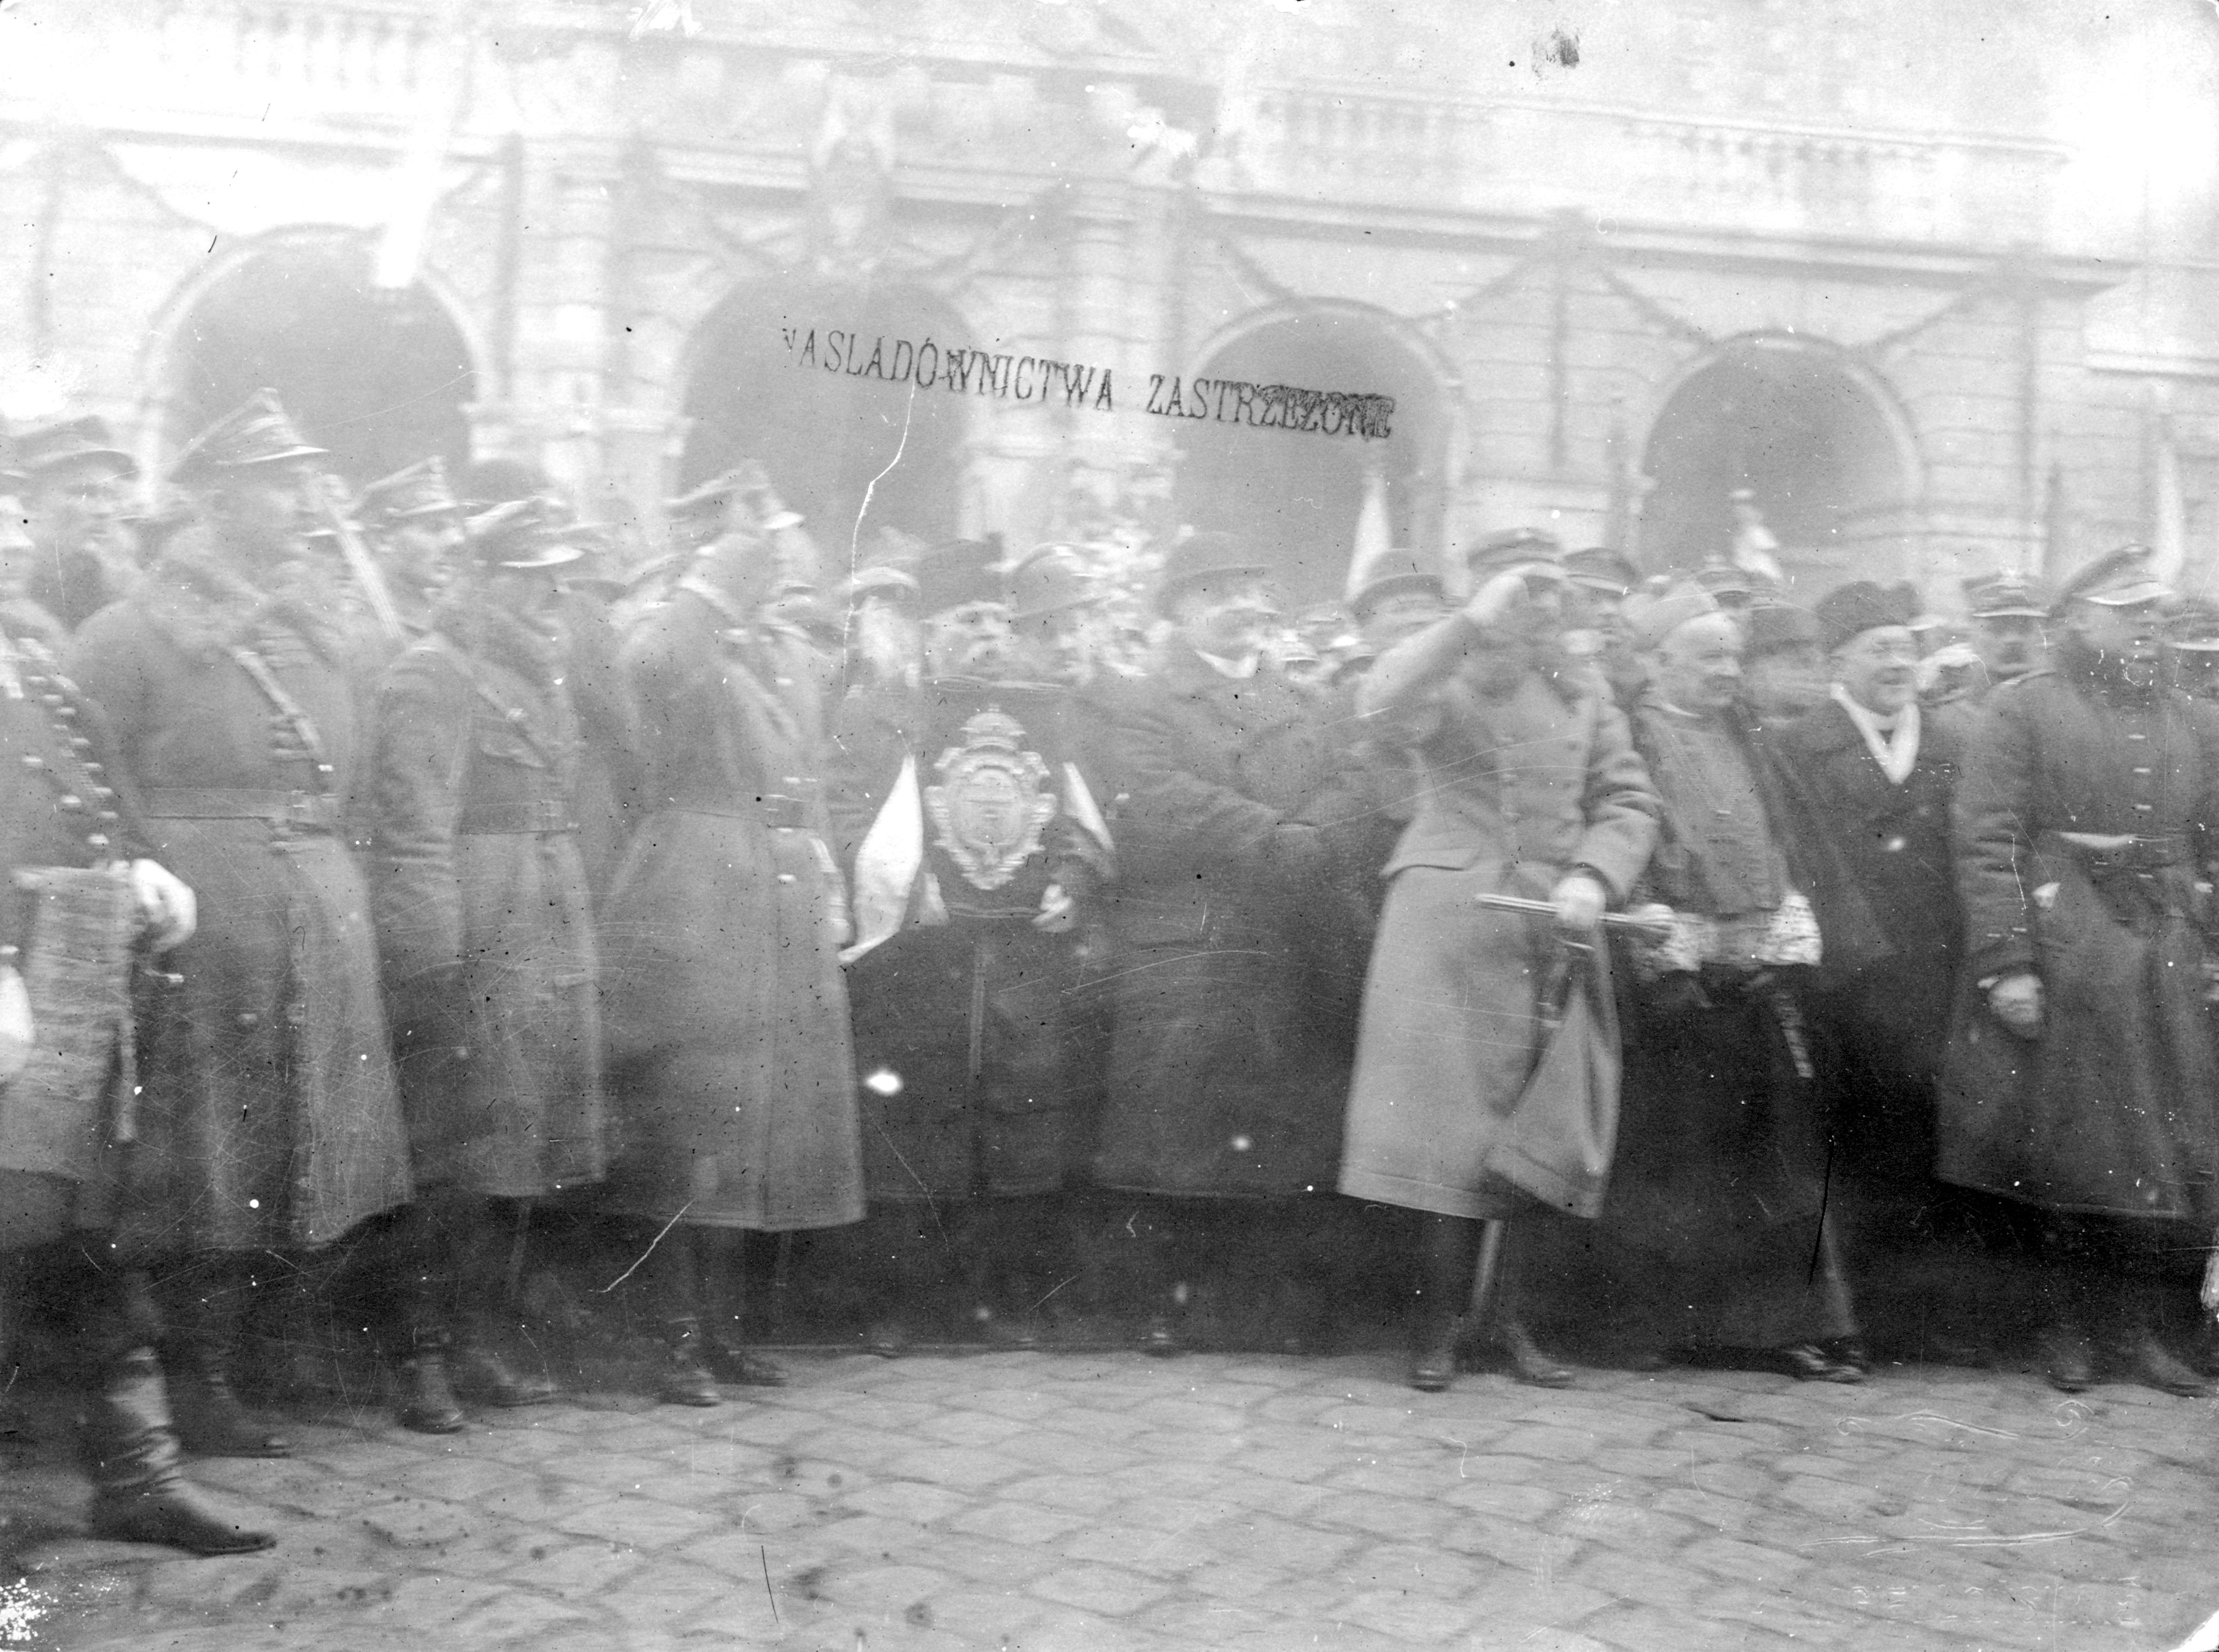 Virtuti Militari order being awarded to Lviv. In the center of the photo, president (mayor) Józef Neumann in holding it. Source: Narodowe Archiwum Cyfrowe